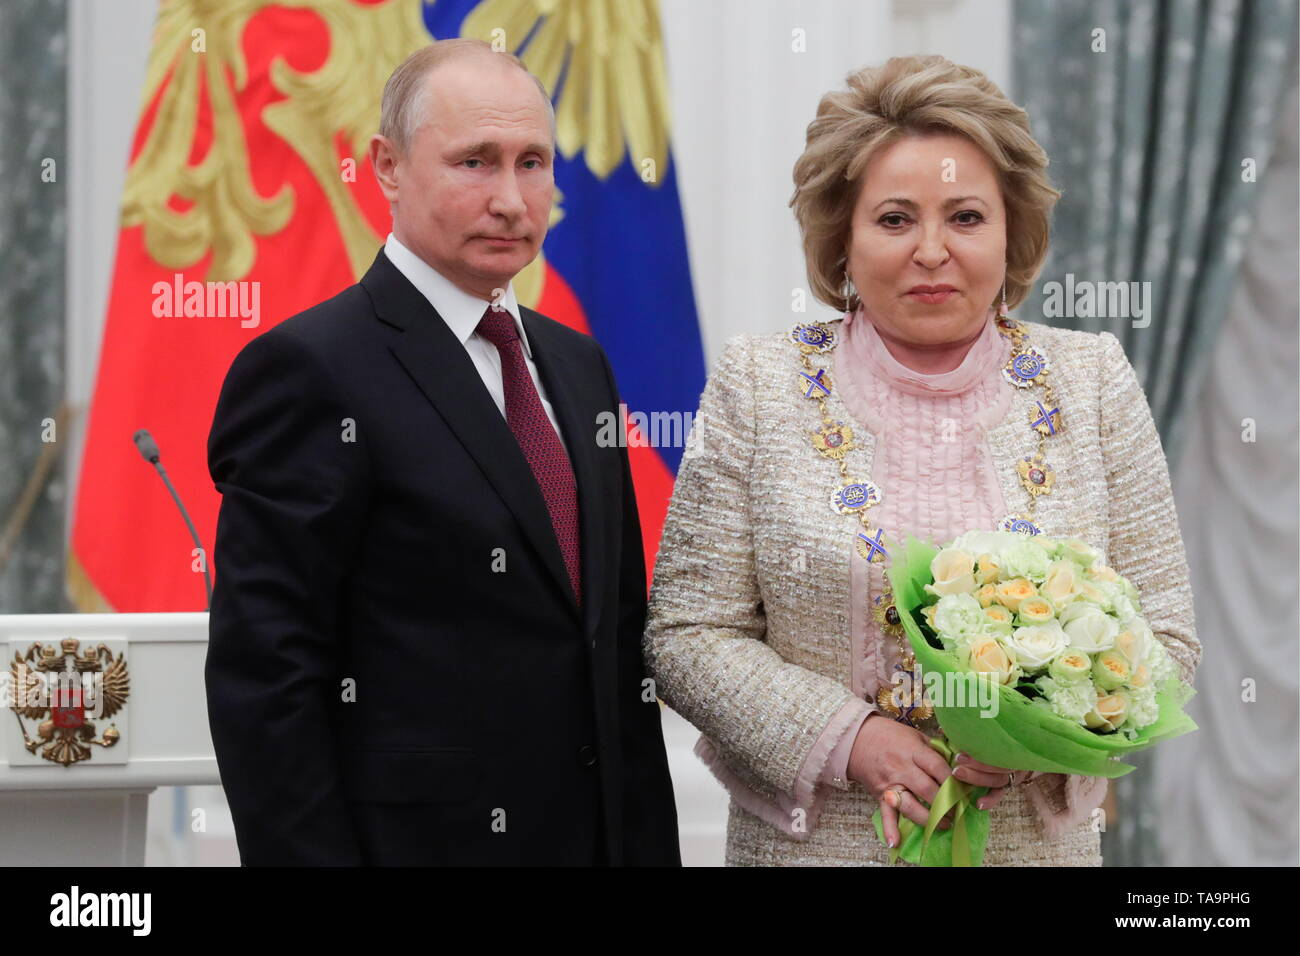 Moscow, Russia. 23rd May, 2019. MOSCOW, RUSSIA - MAY 23, 2019: Russia's President Vladimir Putin (L) and Russian Federation Council Chairperson Valentina Matviyenko, awarded the Order of St Andrew the Apostle the First-Called, during a ceremony to present state decorations at Moscow's Kremlin. Mikhail Metzel/TASS Credit: ITAR-TASS News Agency/Alamy Live News - Stock Image